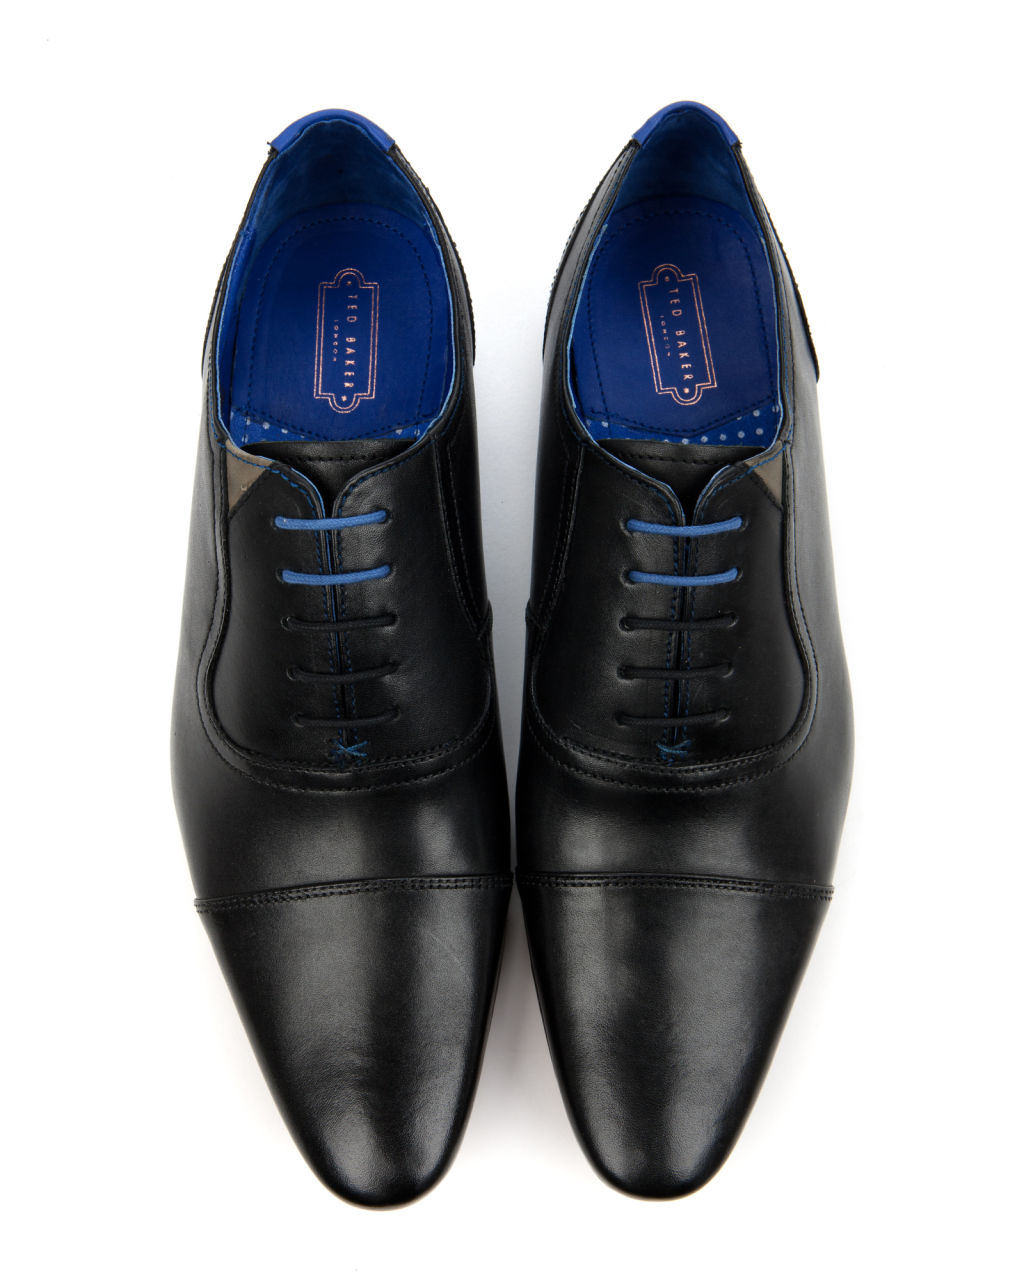 Ted Baker Black Capped Oxford Shoes